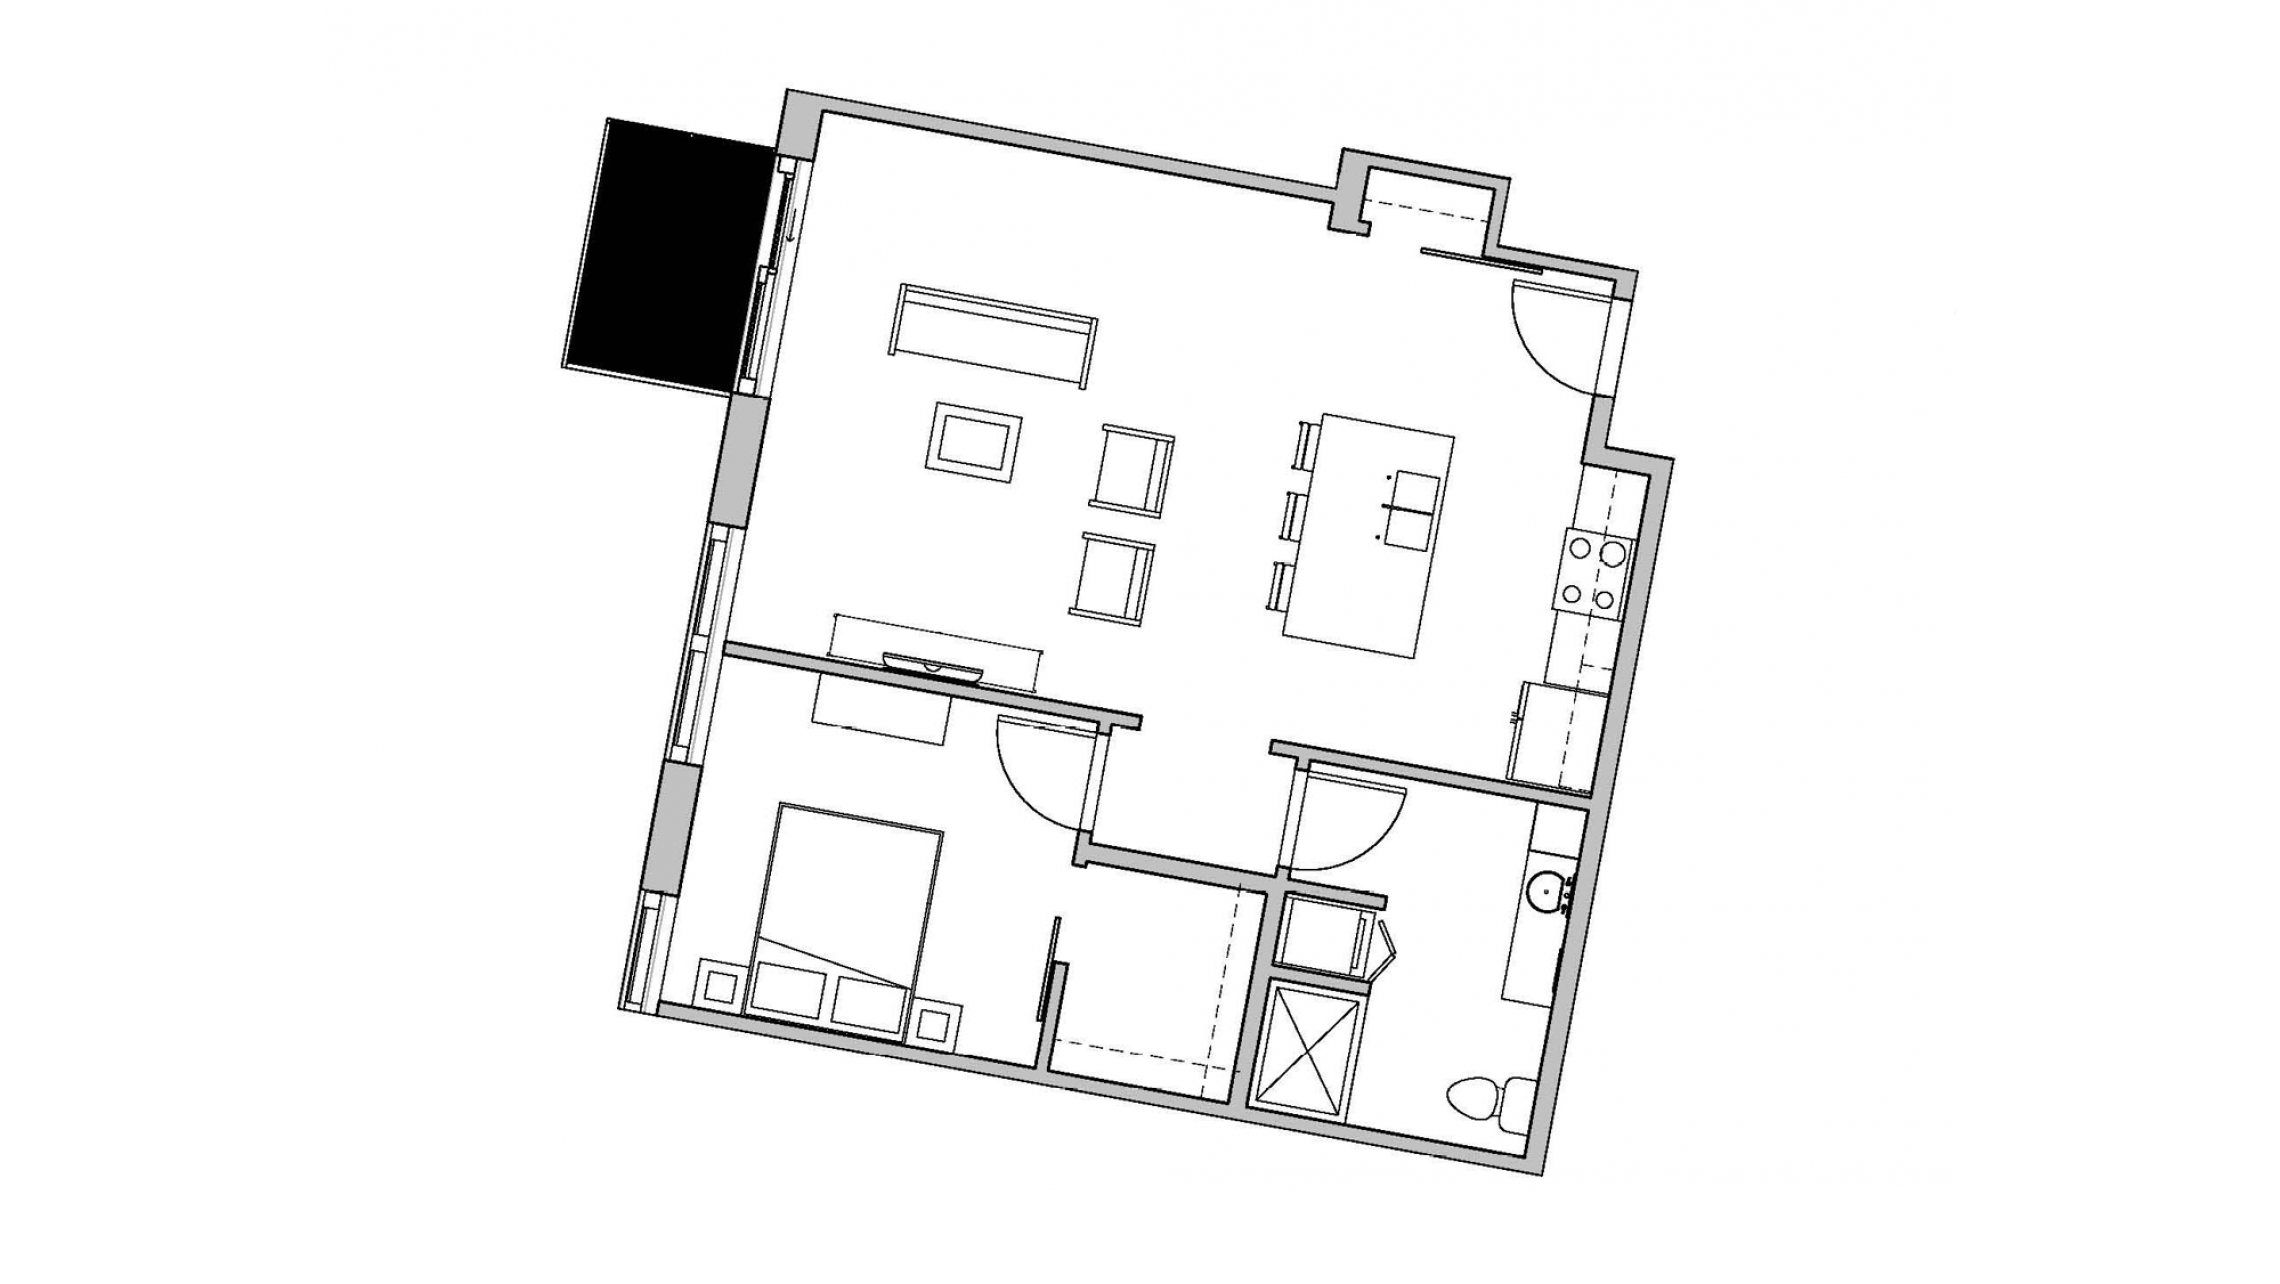 ULI Seven27 230 - One Bedroom, One Bathroom